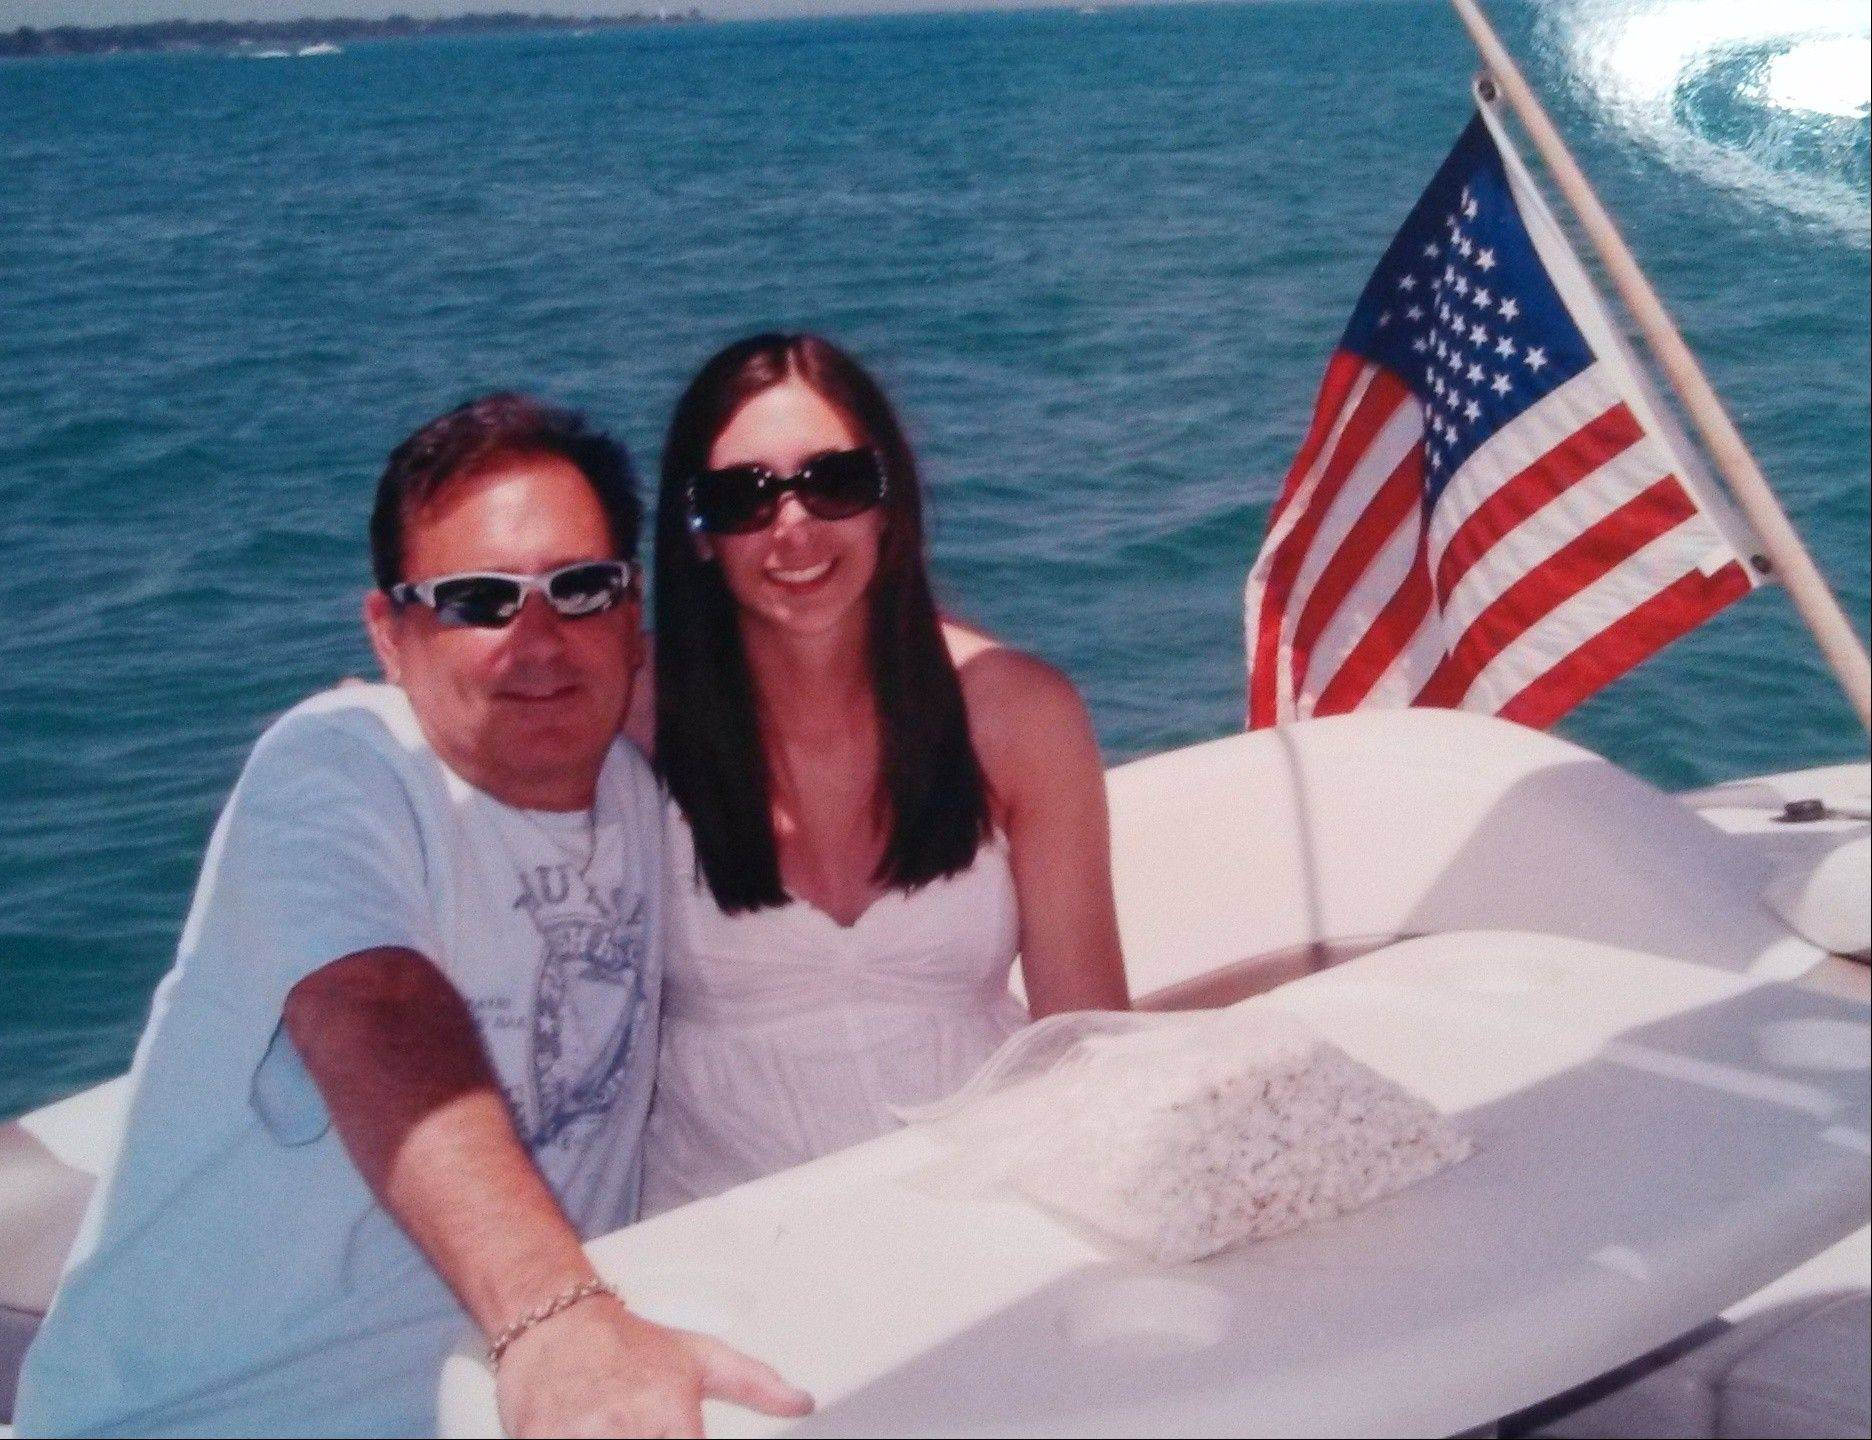 Richard Franzese, shown with his daughter, Danielle Franzese, was an avid boater who received a lifesaving award in 2005 for rescuing a man from drowning.